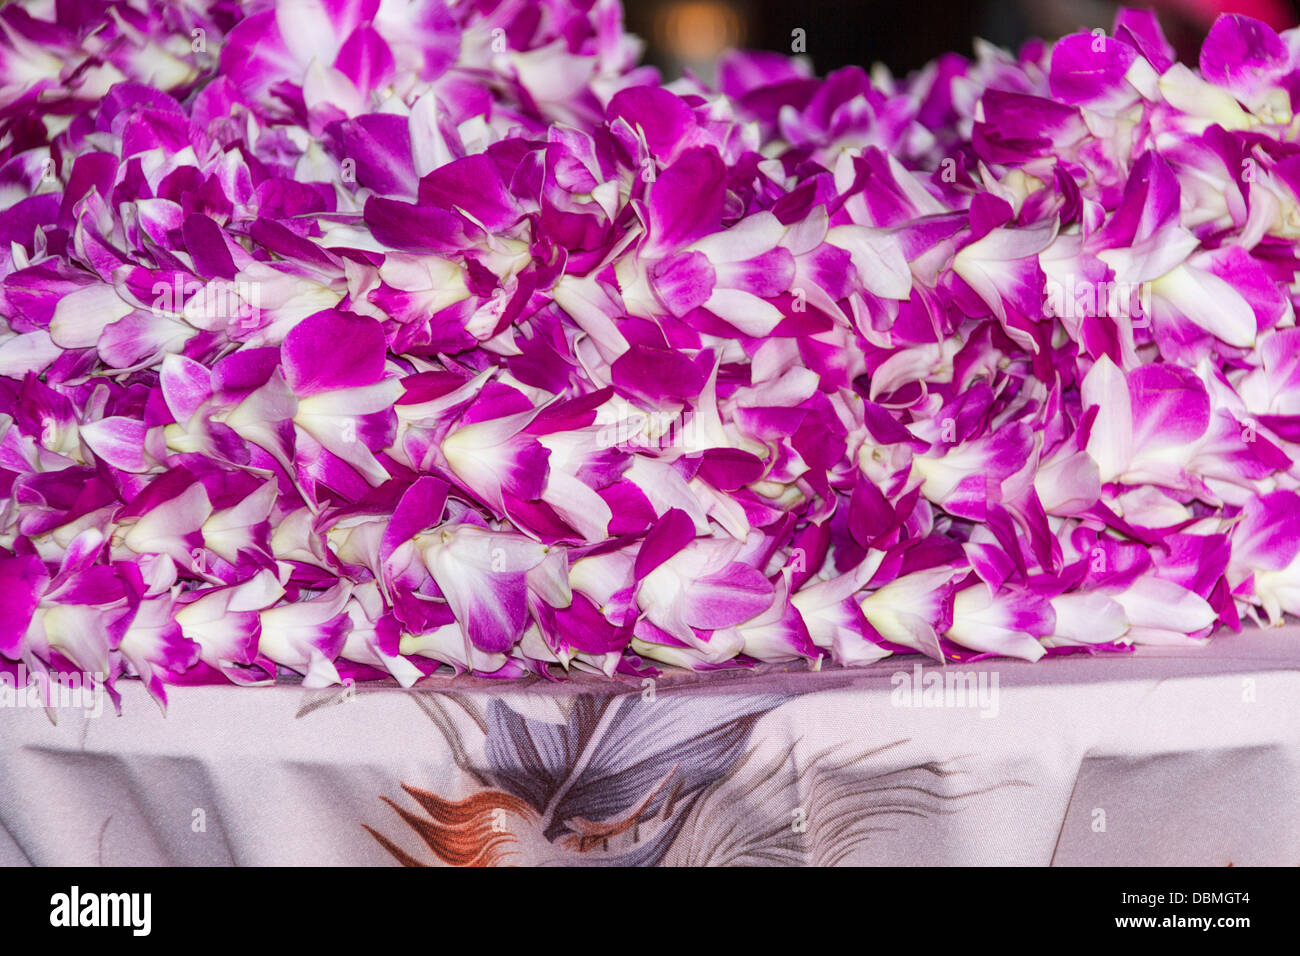 Wecome Leis given to tourists arriving on Maui in Hawaii. - Stock Image